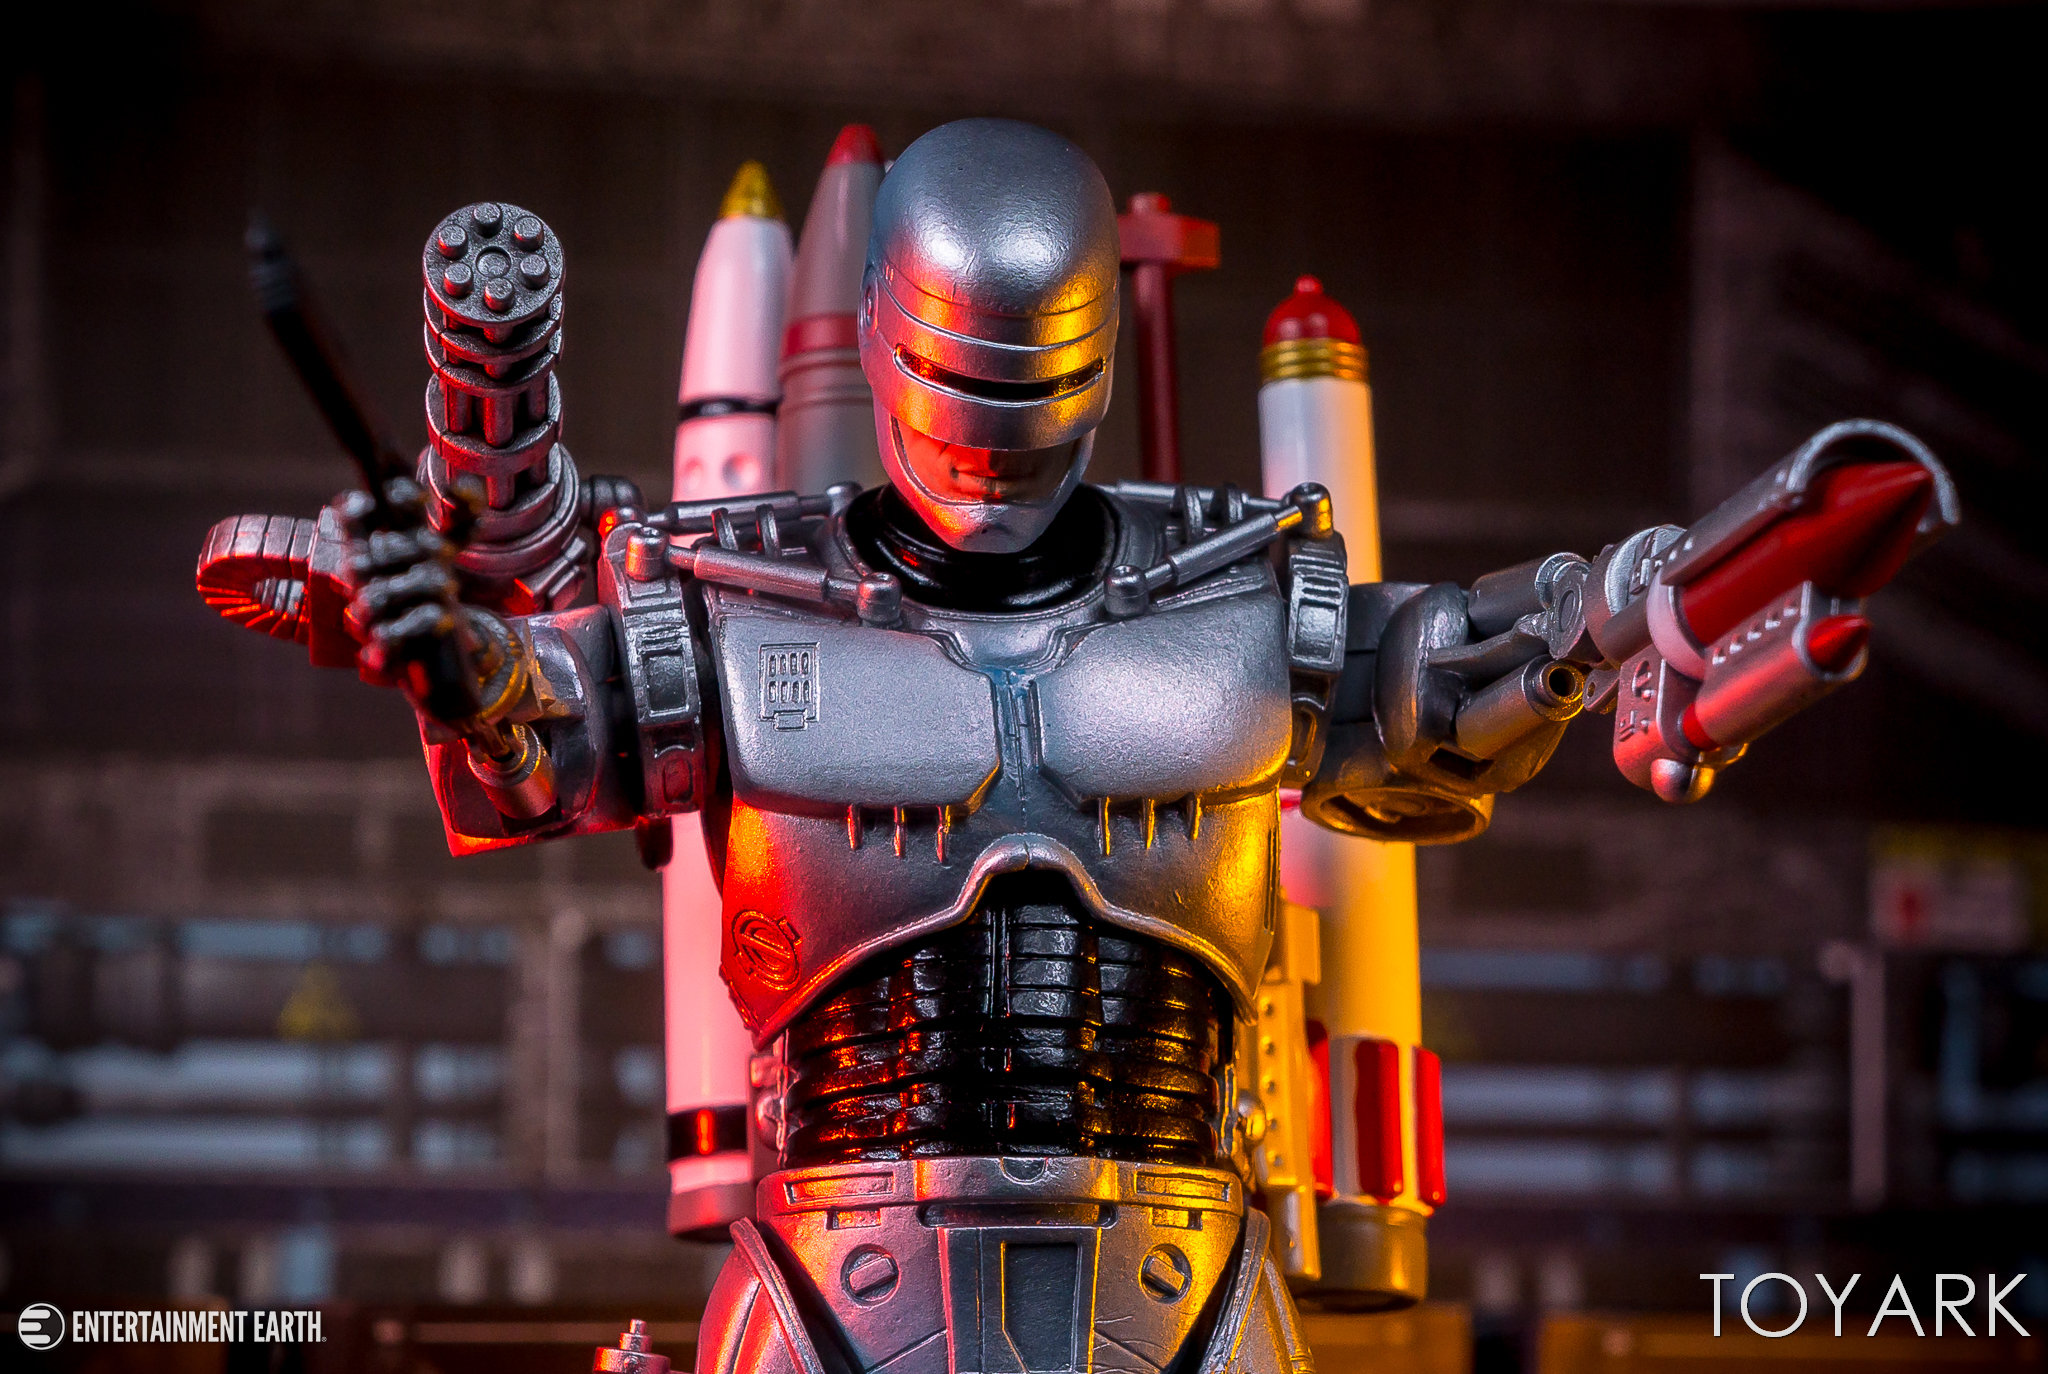 http://news.toyark.com/wp-content/uploads/sites/4/2018/02/NECA-Ult-Future-Robocop-016.jpg